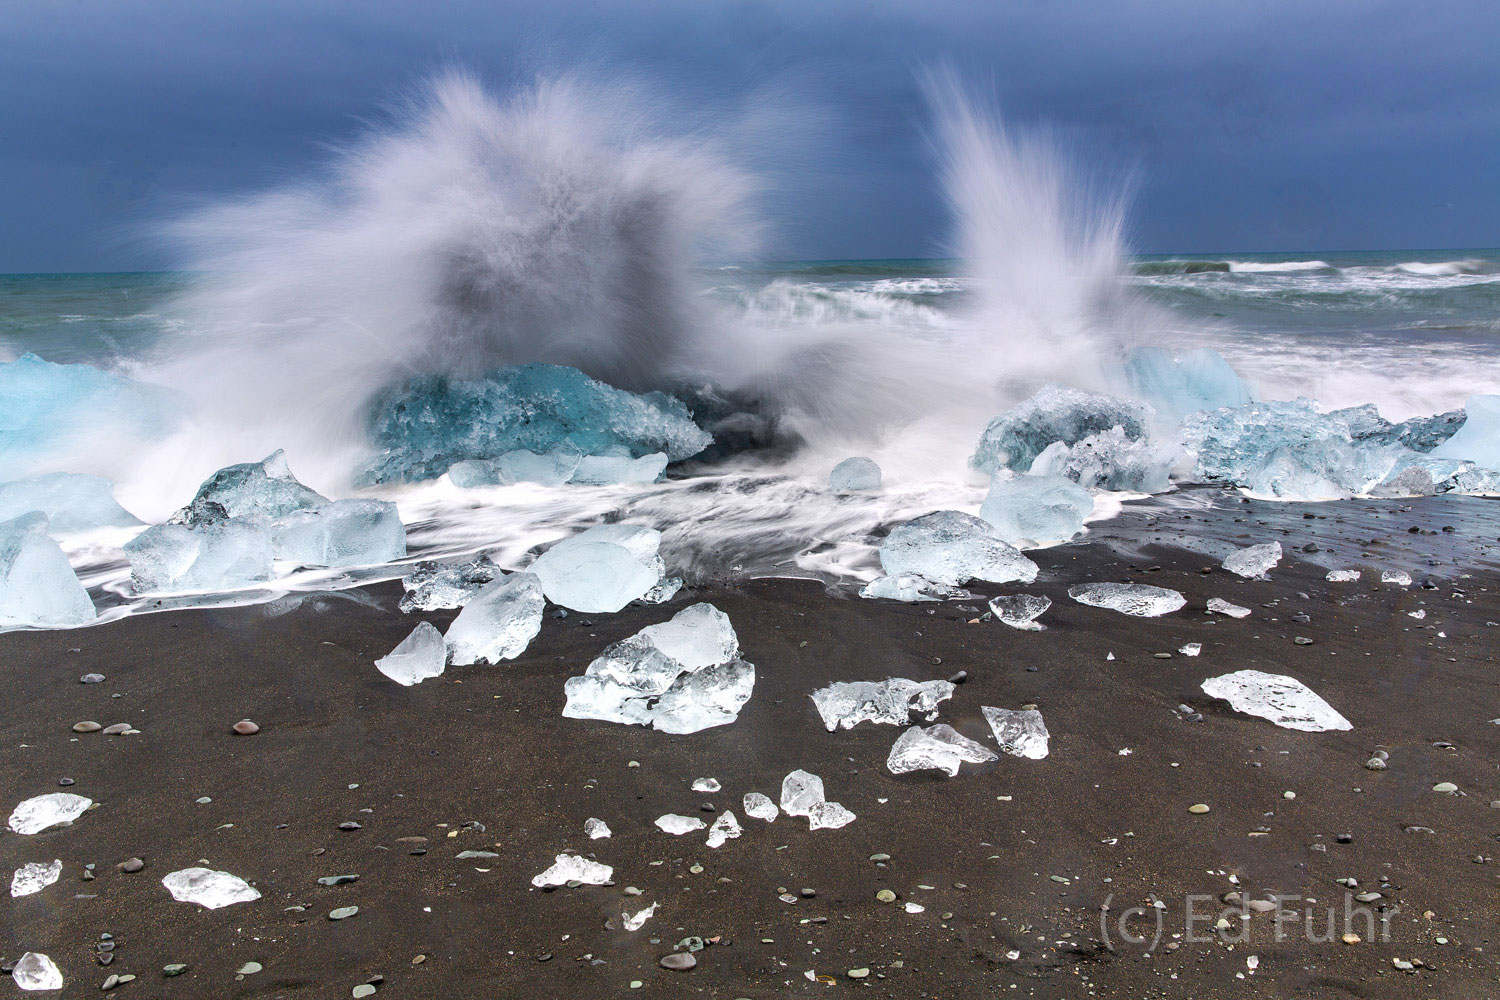 A large wave crashes into an icy boulder orphaned on this black sand beach.